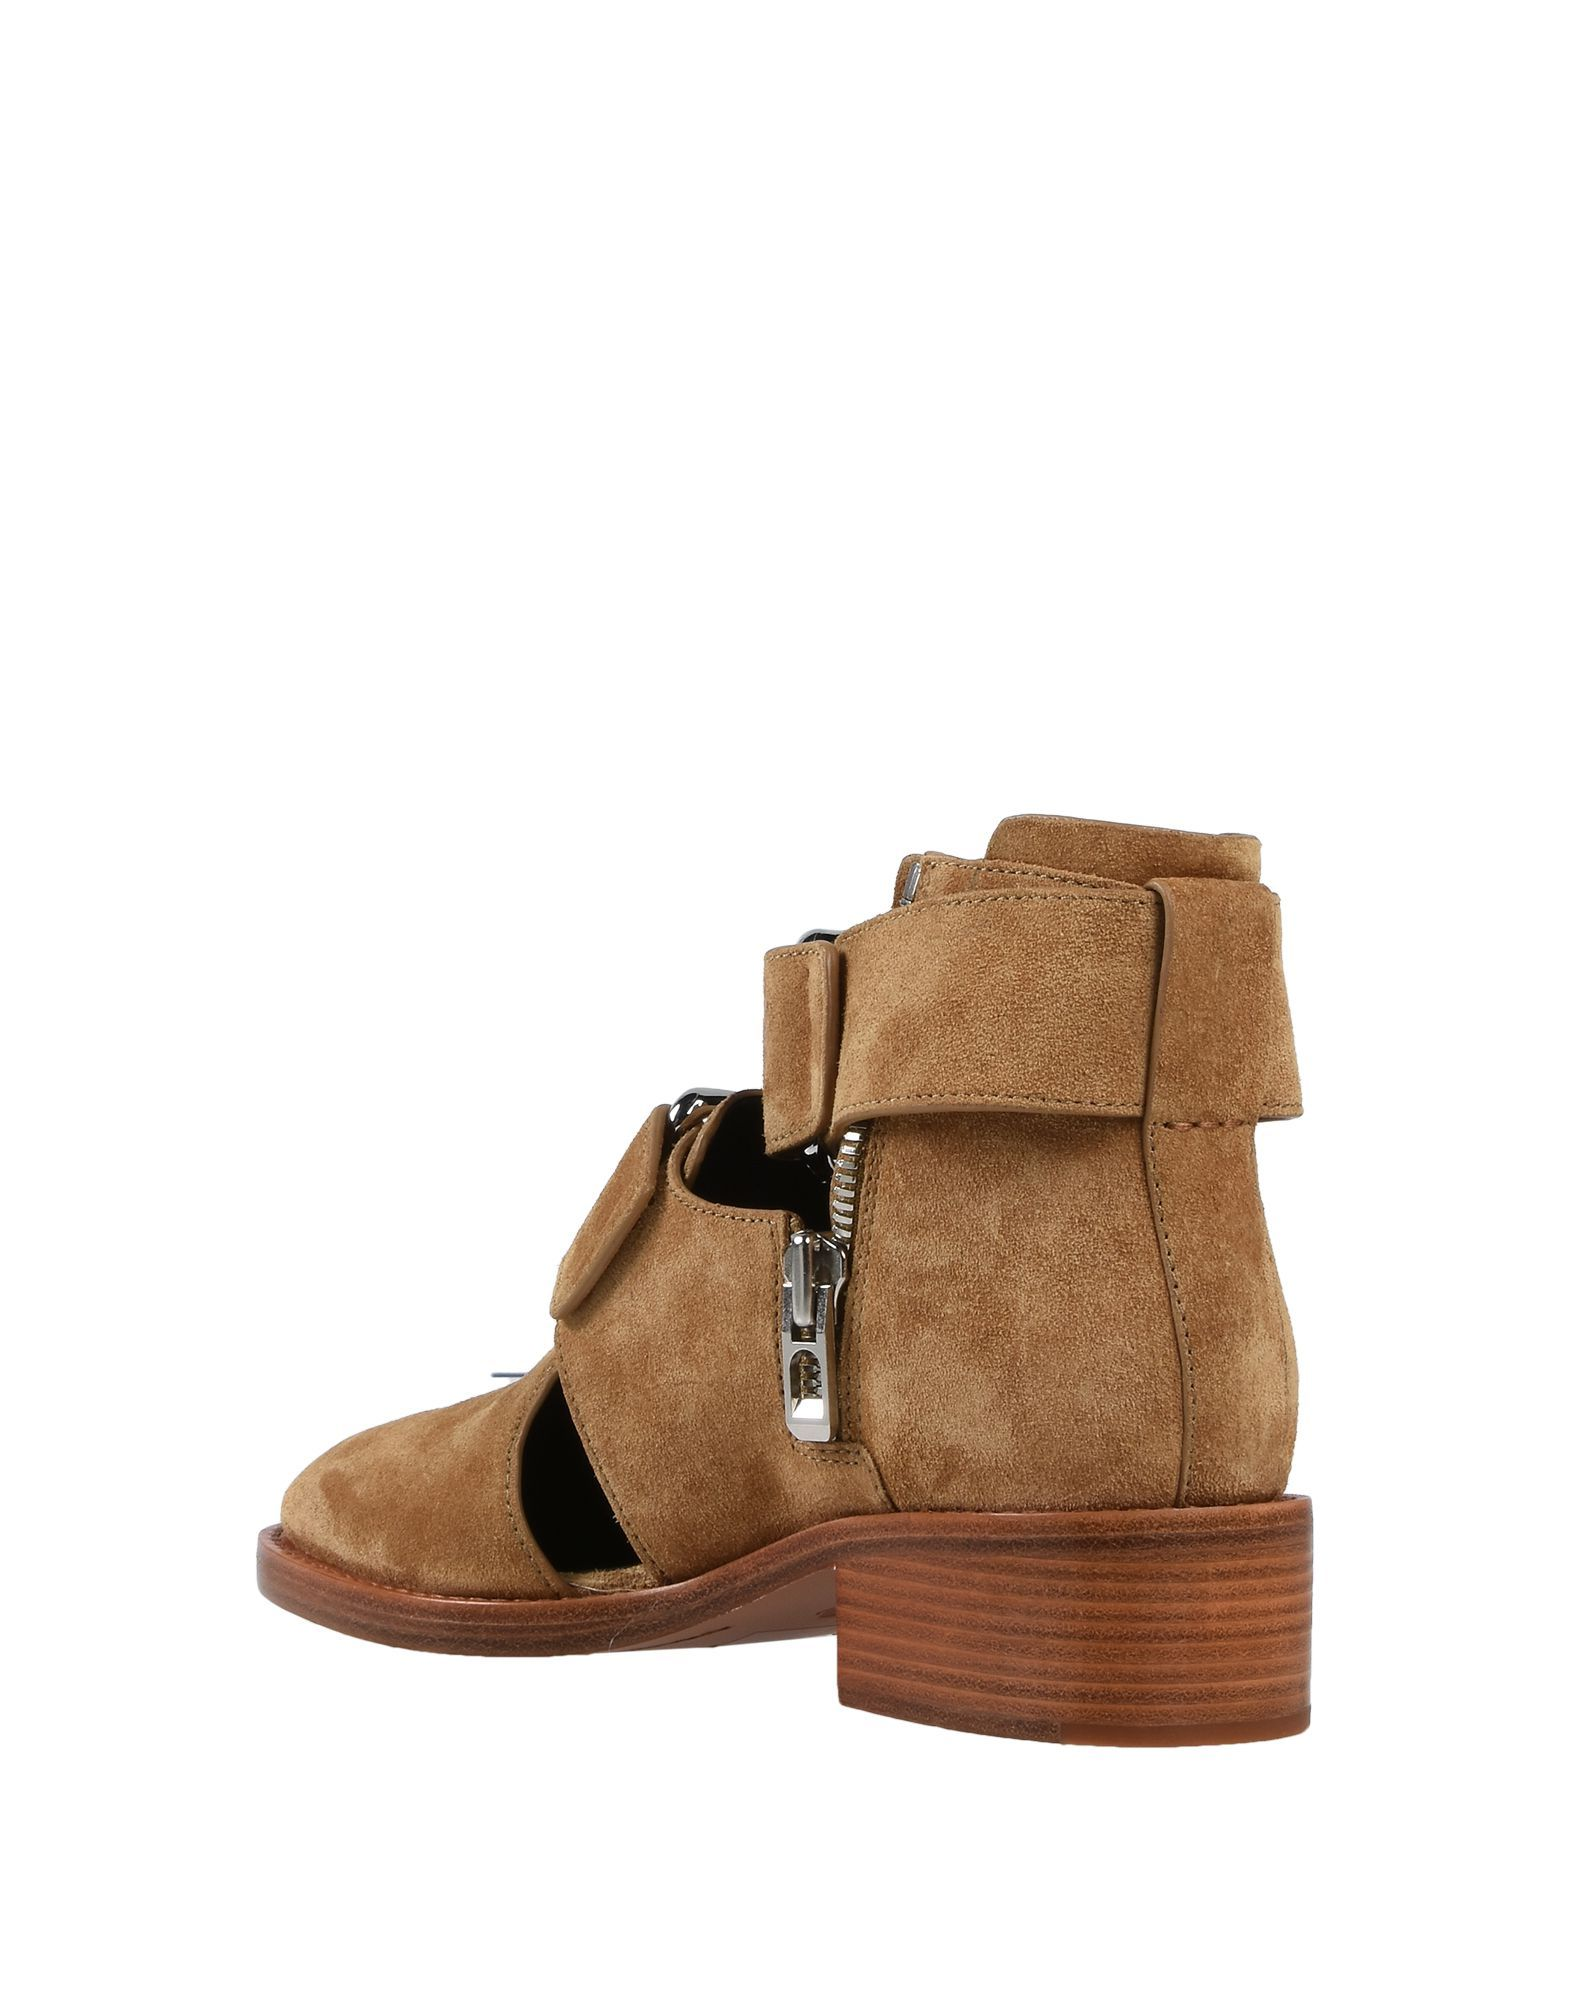 3.1 Phillip Lim Sand Leather Ankle Boots